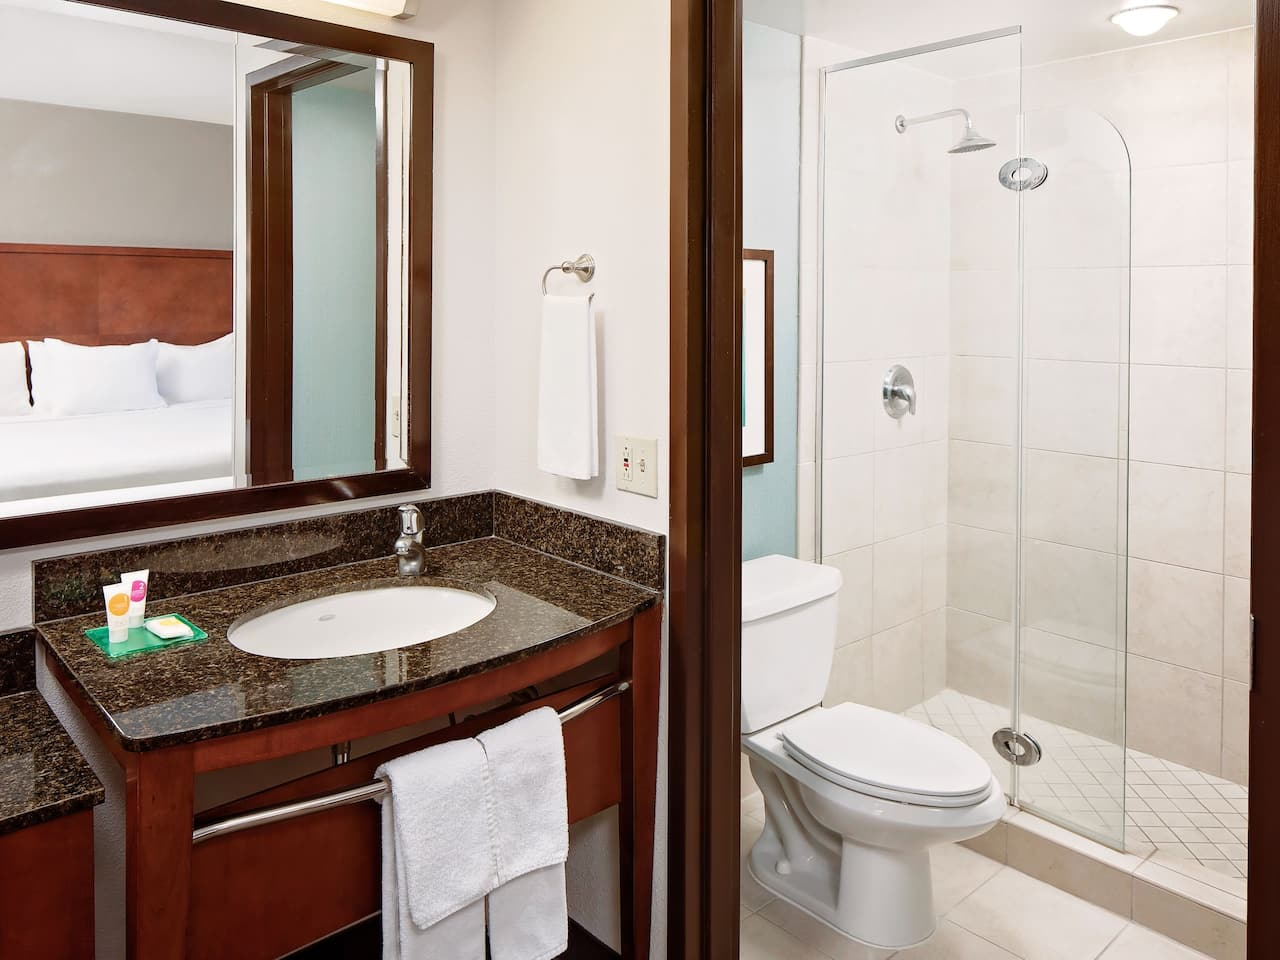 bathroom at hyatt place ontario rancho cucamongo